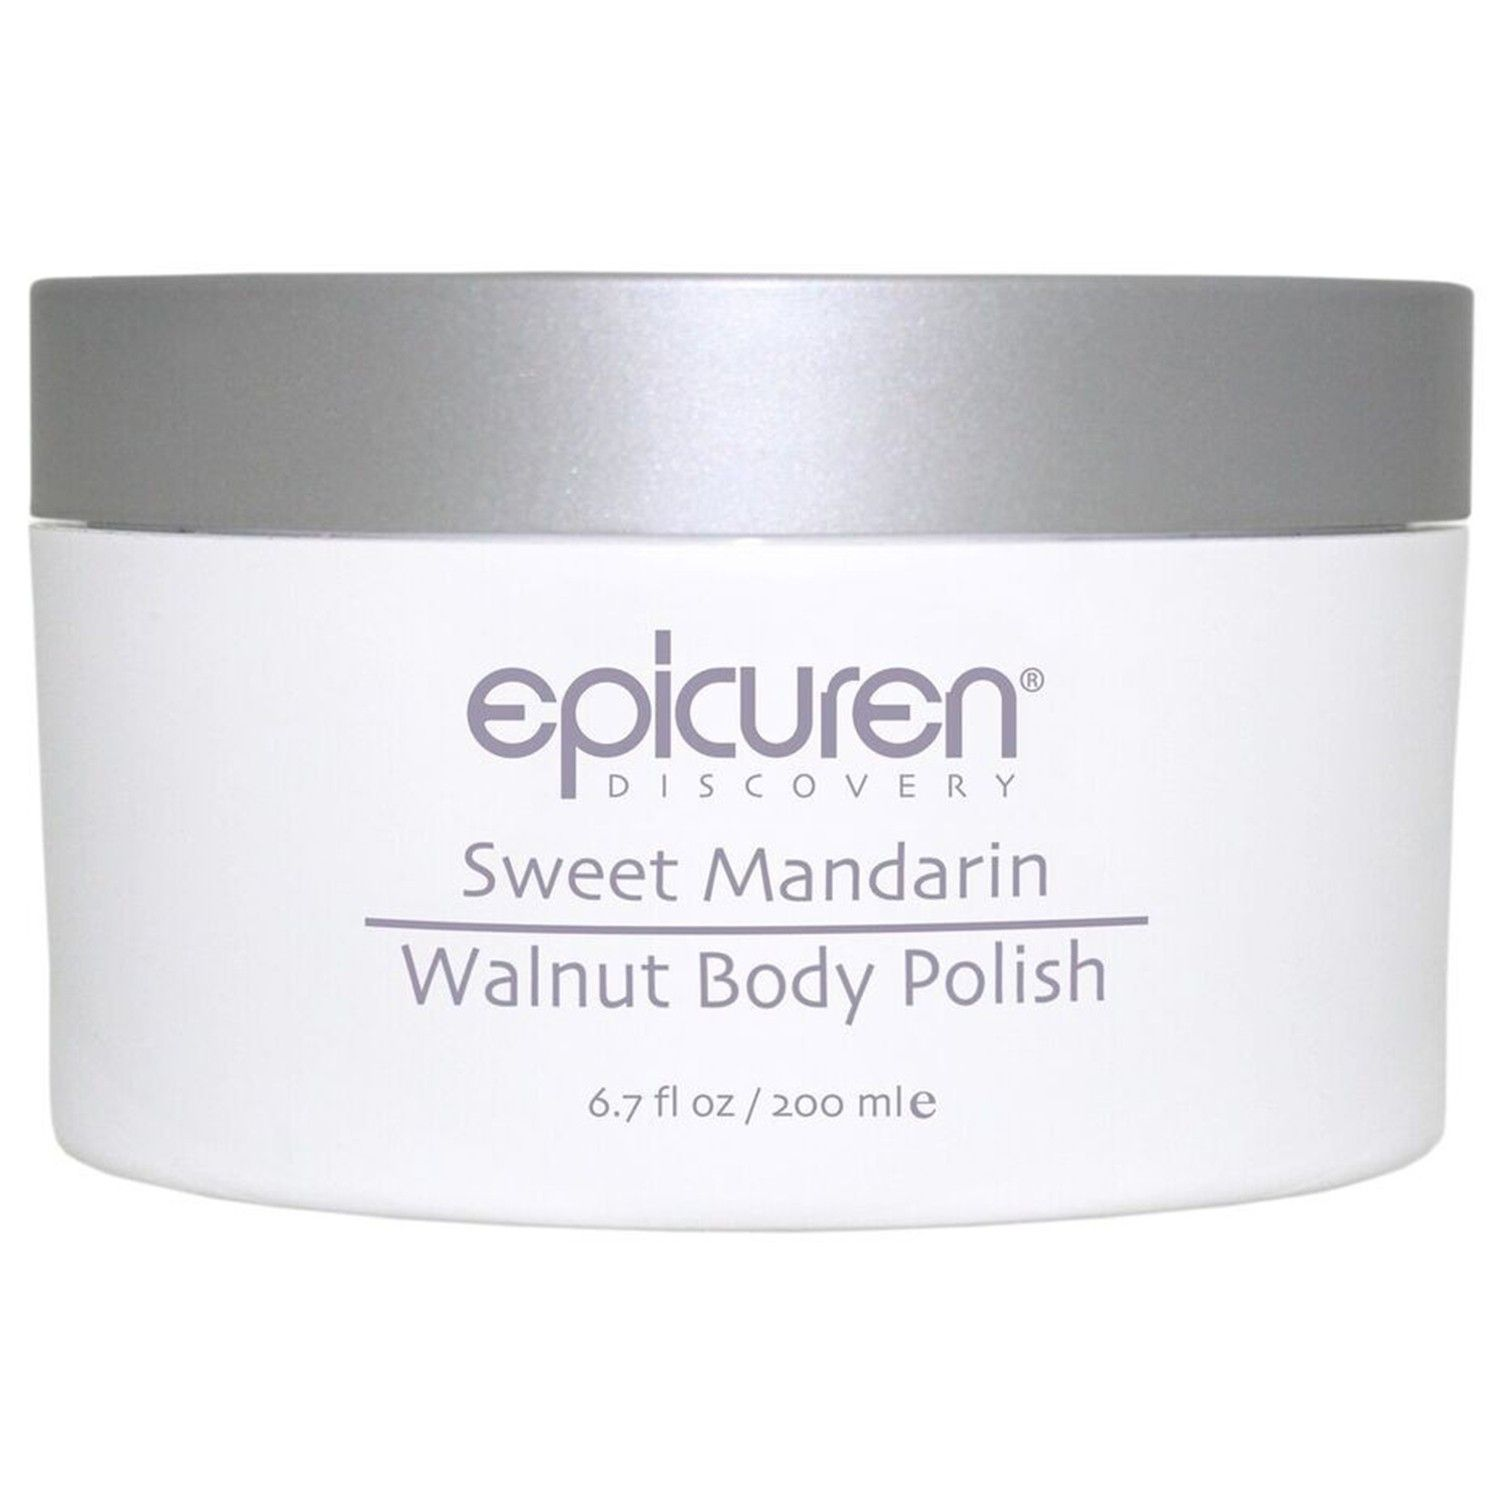 epicuren Discovery Sweet Mandarin Walnut Body Polish (6.7 fl oz / 200 ml)